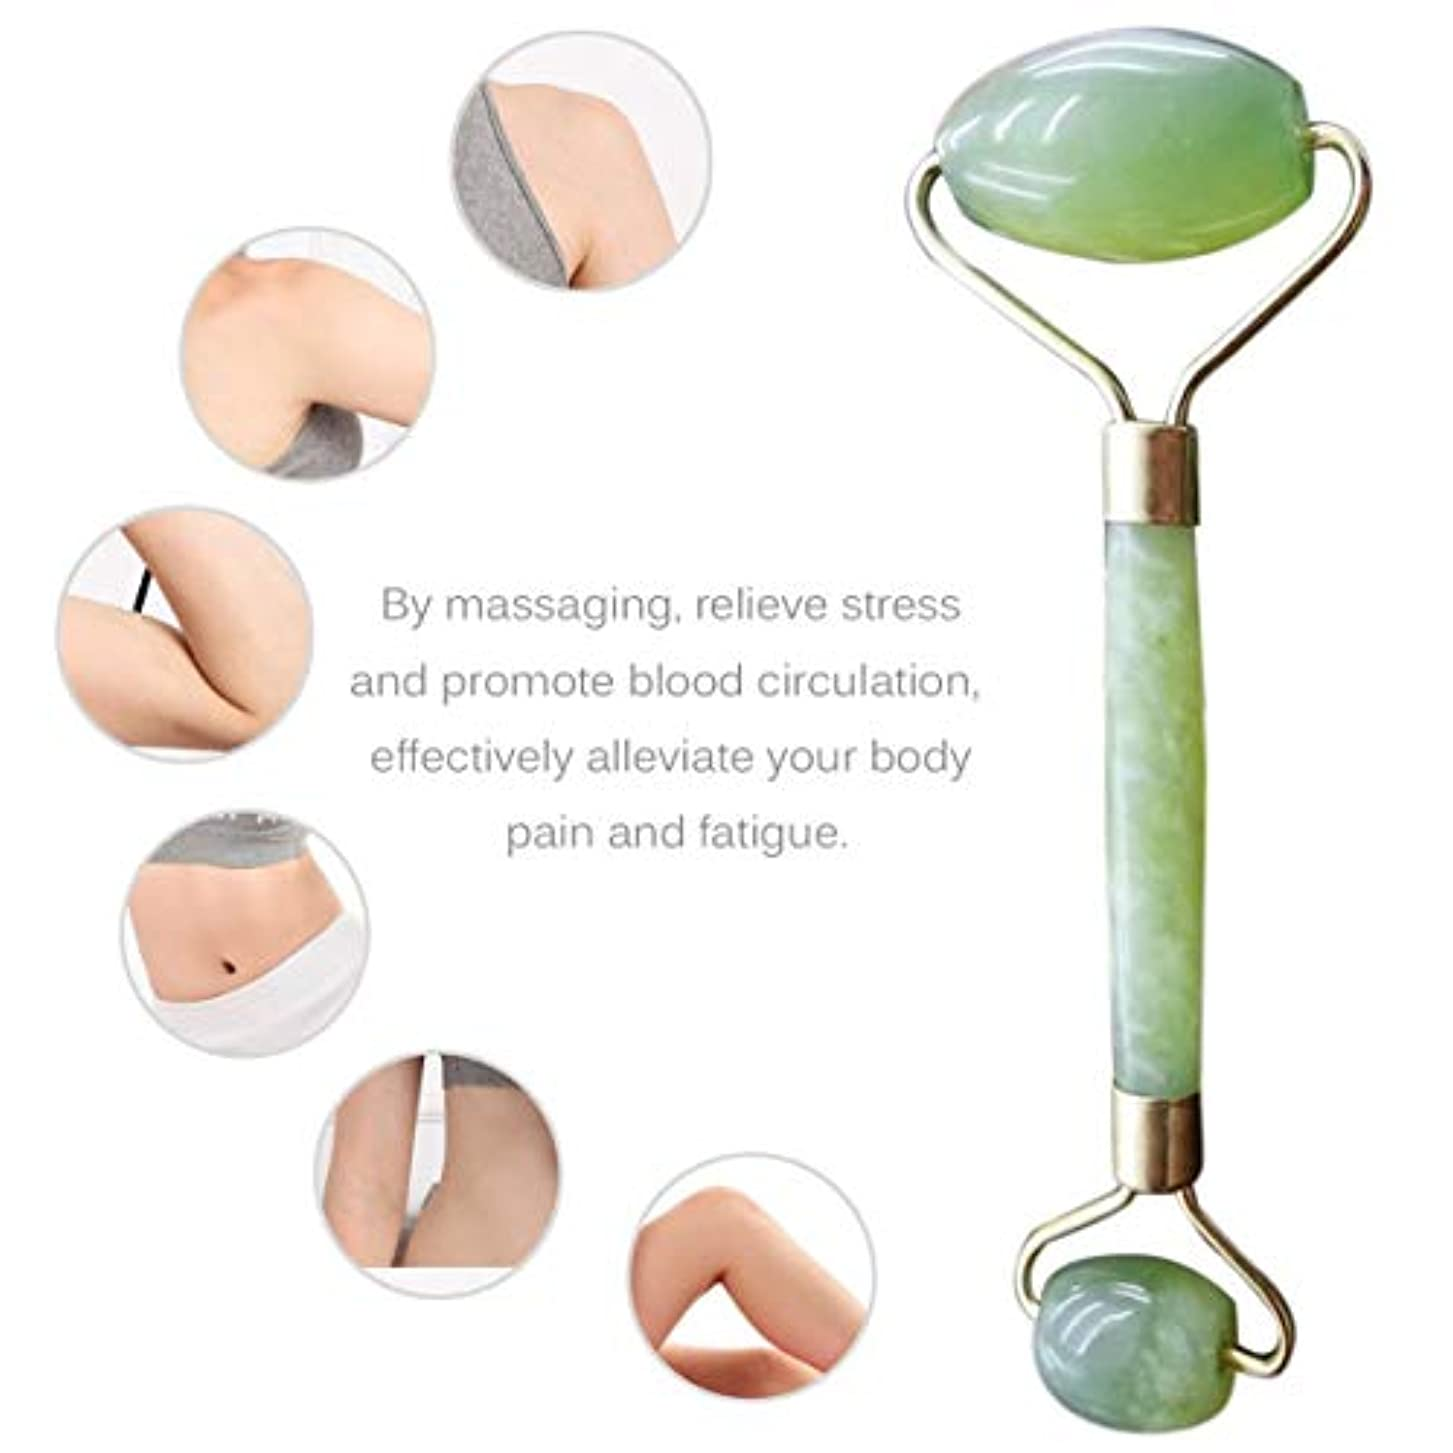 拒絶寛大さ物足りないDouble Heads Natural Jade Face Care Massager Handheld Anti Wrinkle Healthy Face Body Foot Massage Tools Best Gift